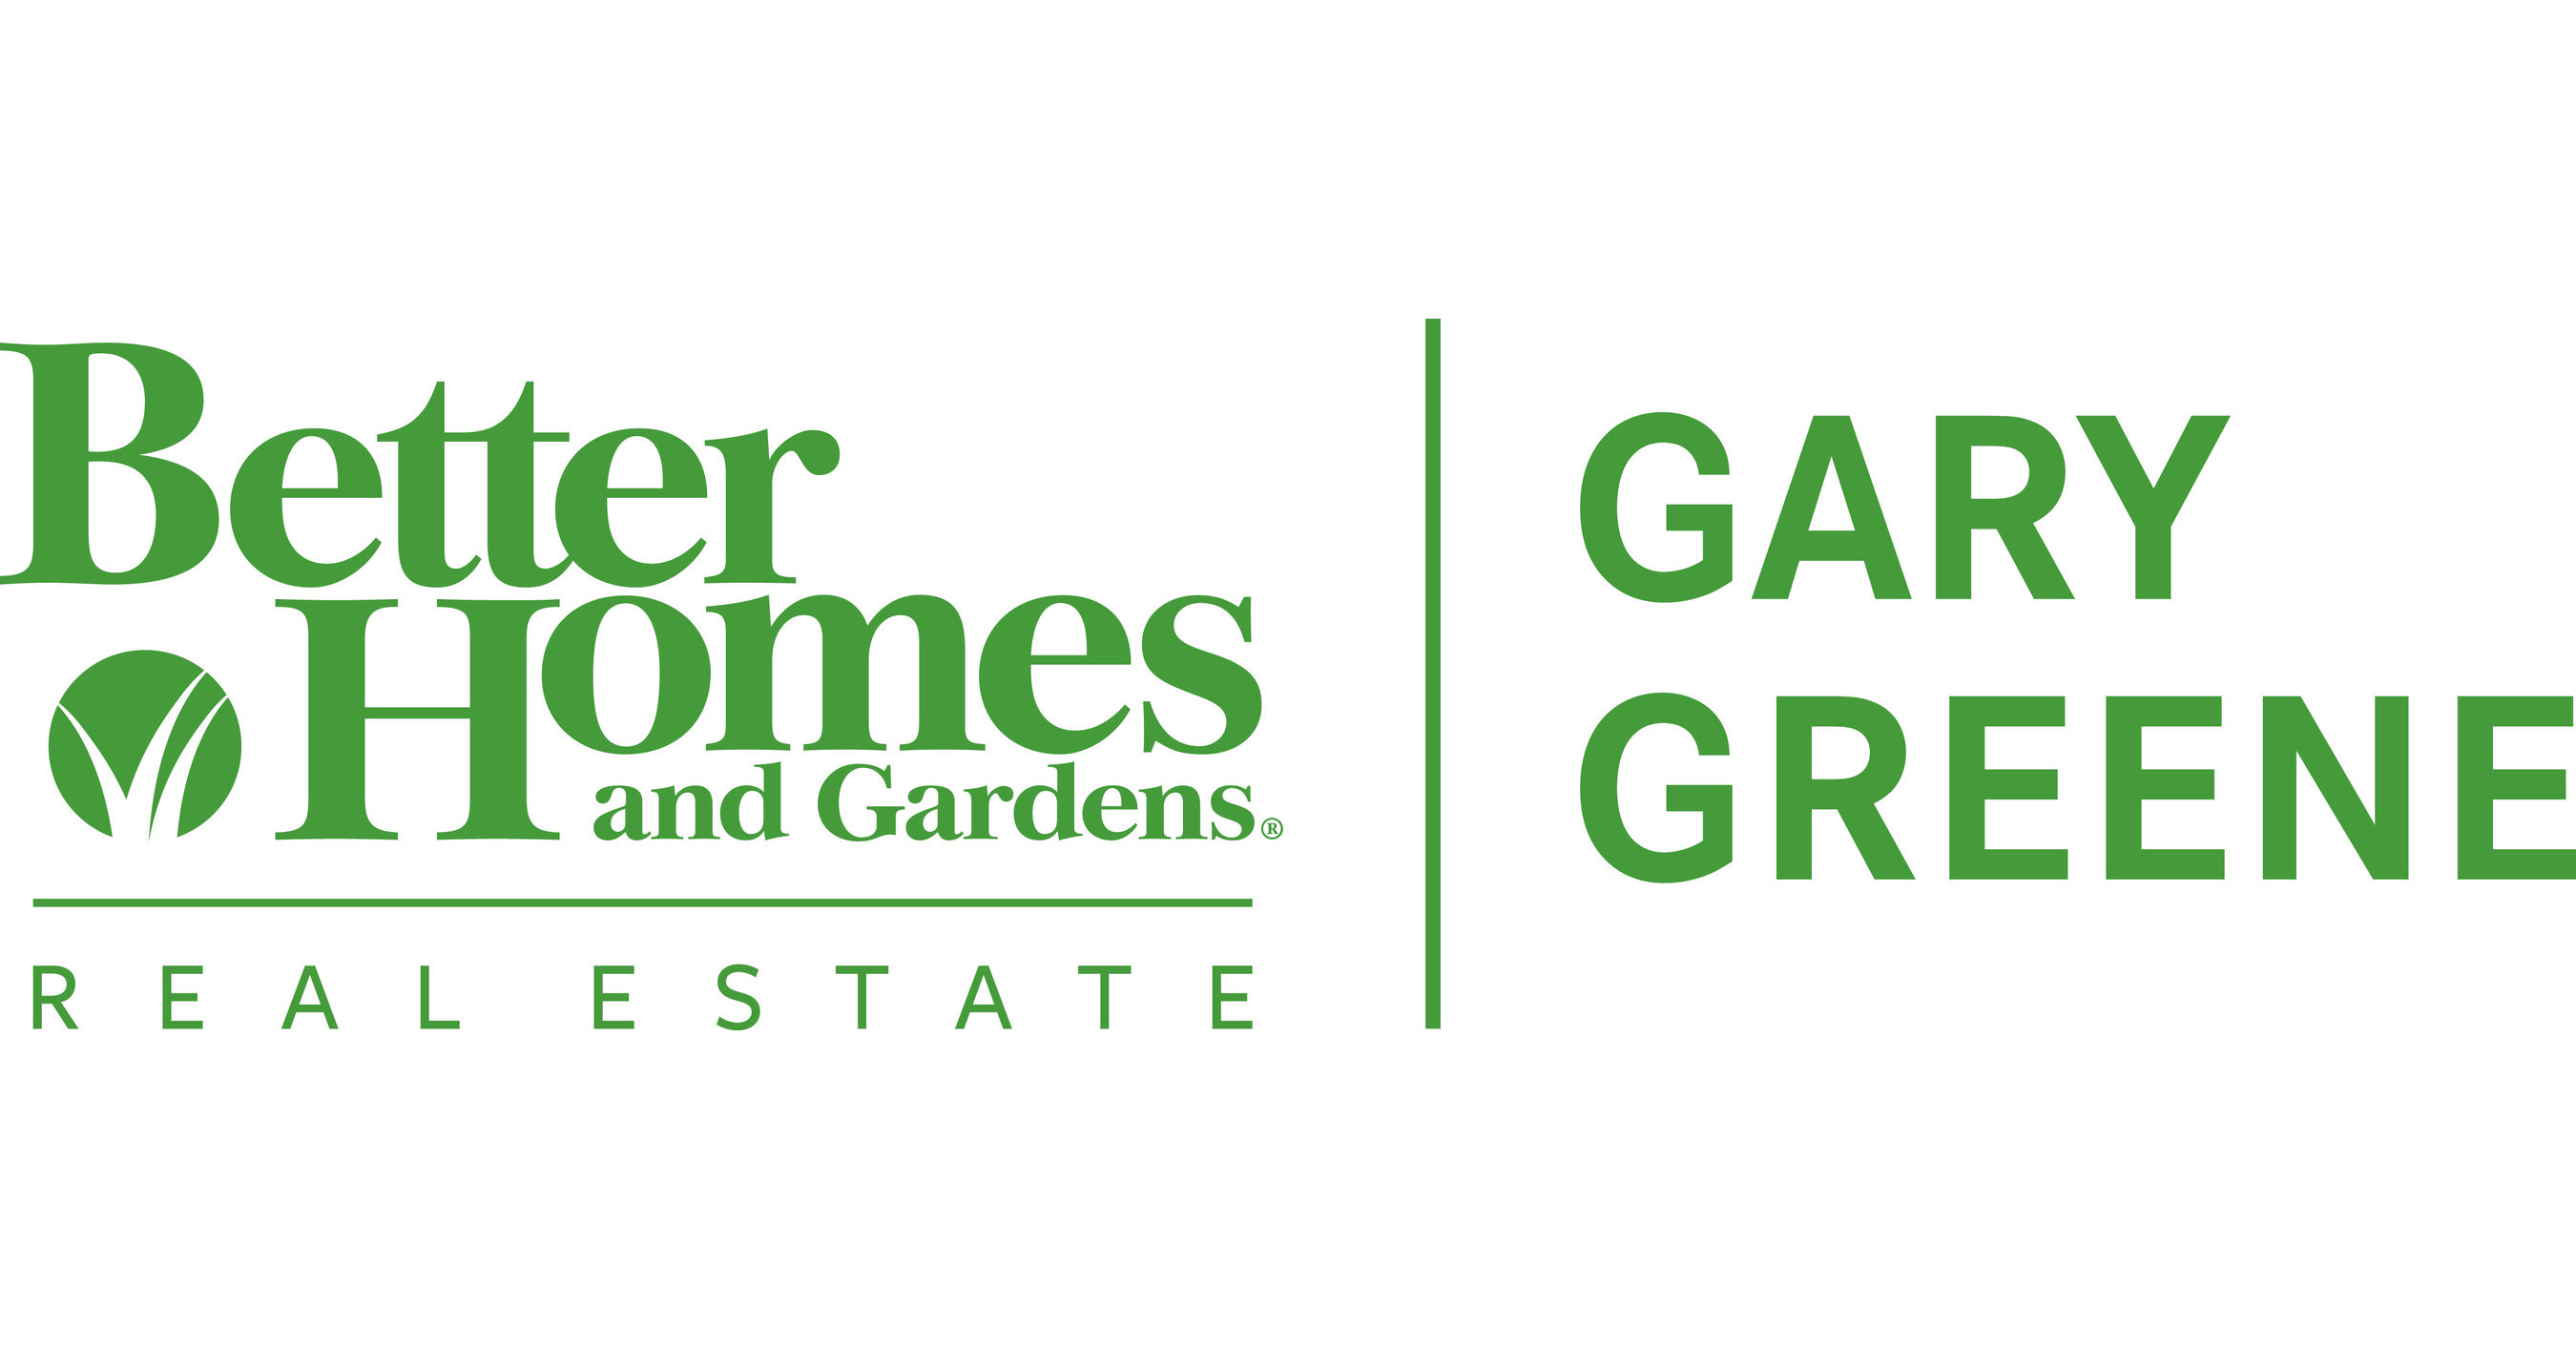 Better Homes and Gardens Real Estate Gary Greene Earns Top